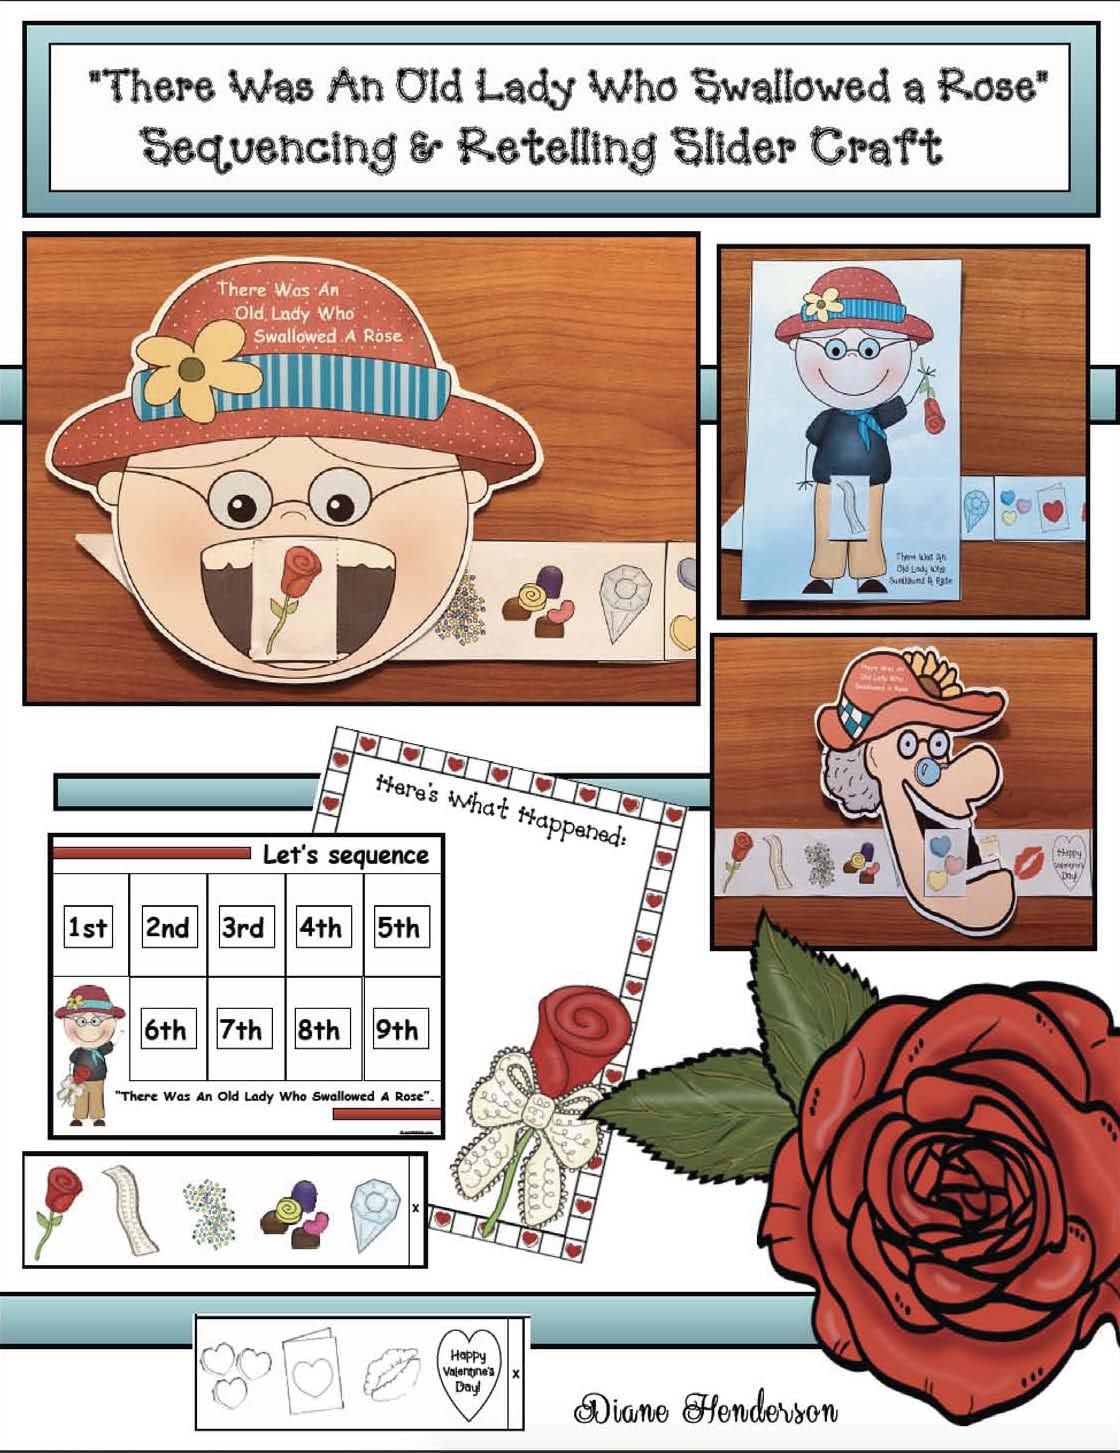 There was an old lady who swallowed a rose activities, valentine party ideas,  valentine stories, sequencing & retelling a story activities